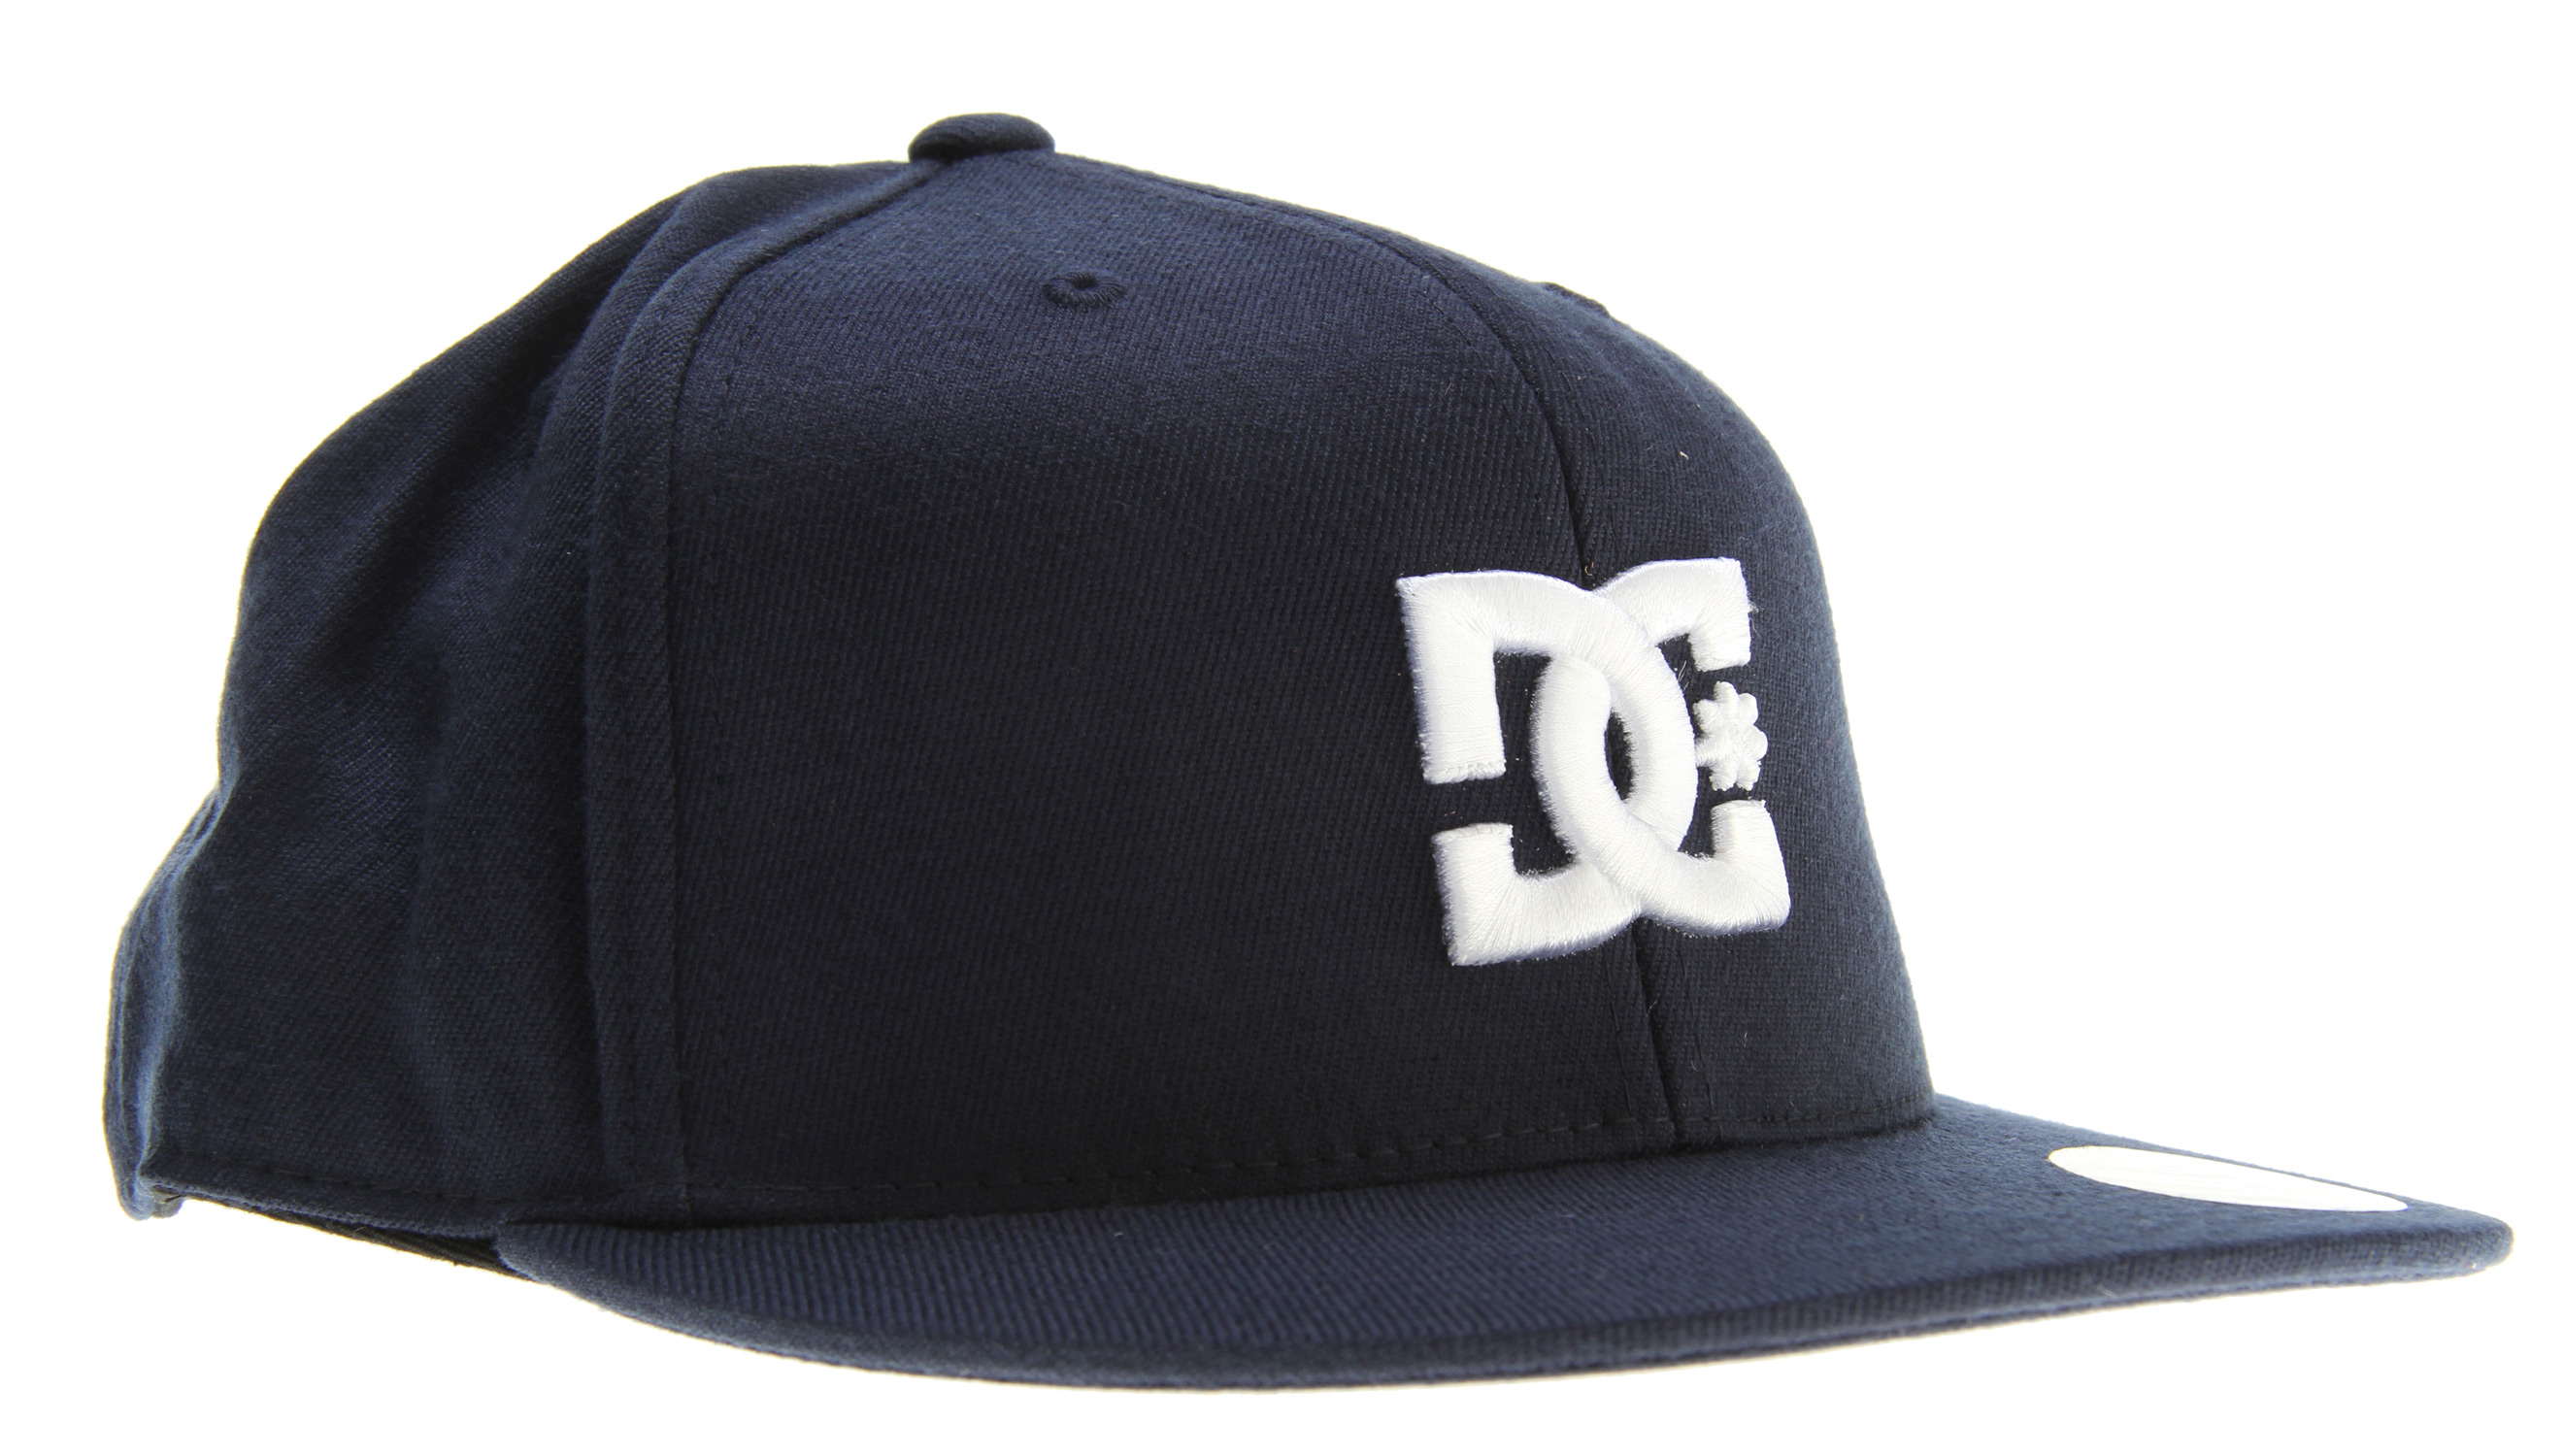 Guns and Military Key Features of the DC Basebro Cap: Wool blend 210 FlexFit 3D logo and small black logo 83% Acrylic 15% Wool 2% Spandex - $19.95